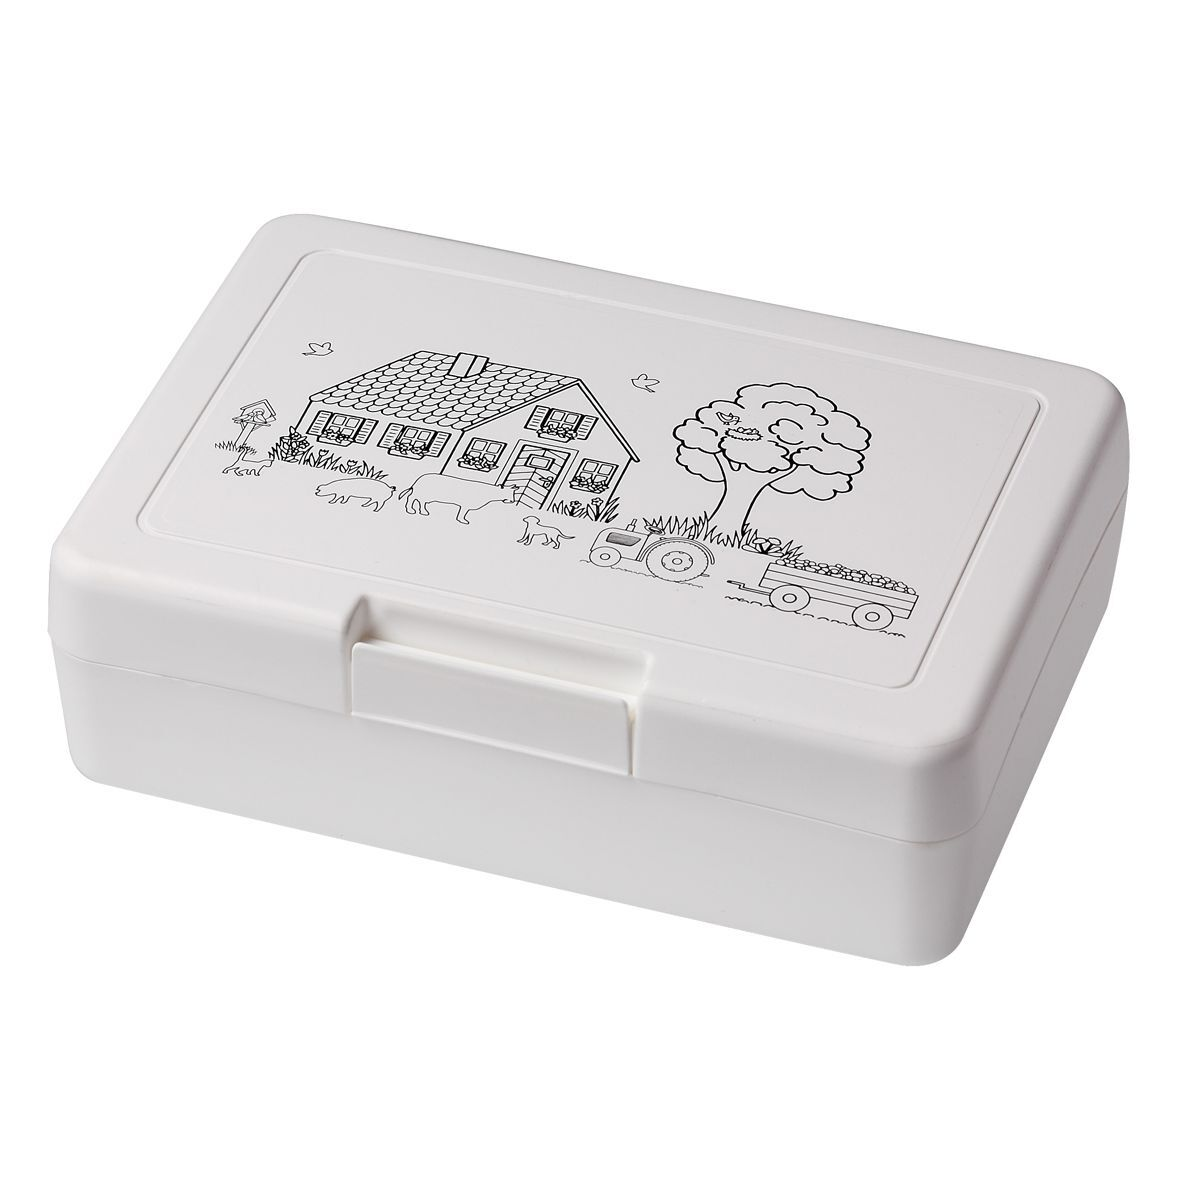 Lunch Box for Colouring